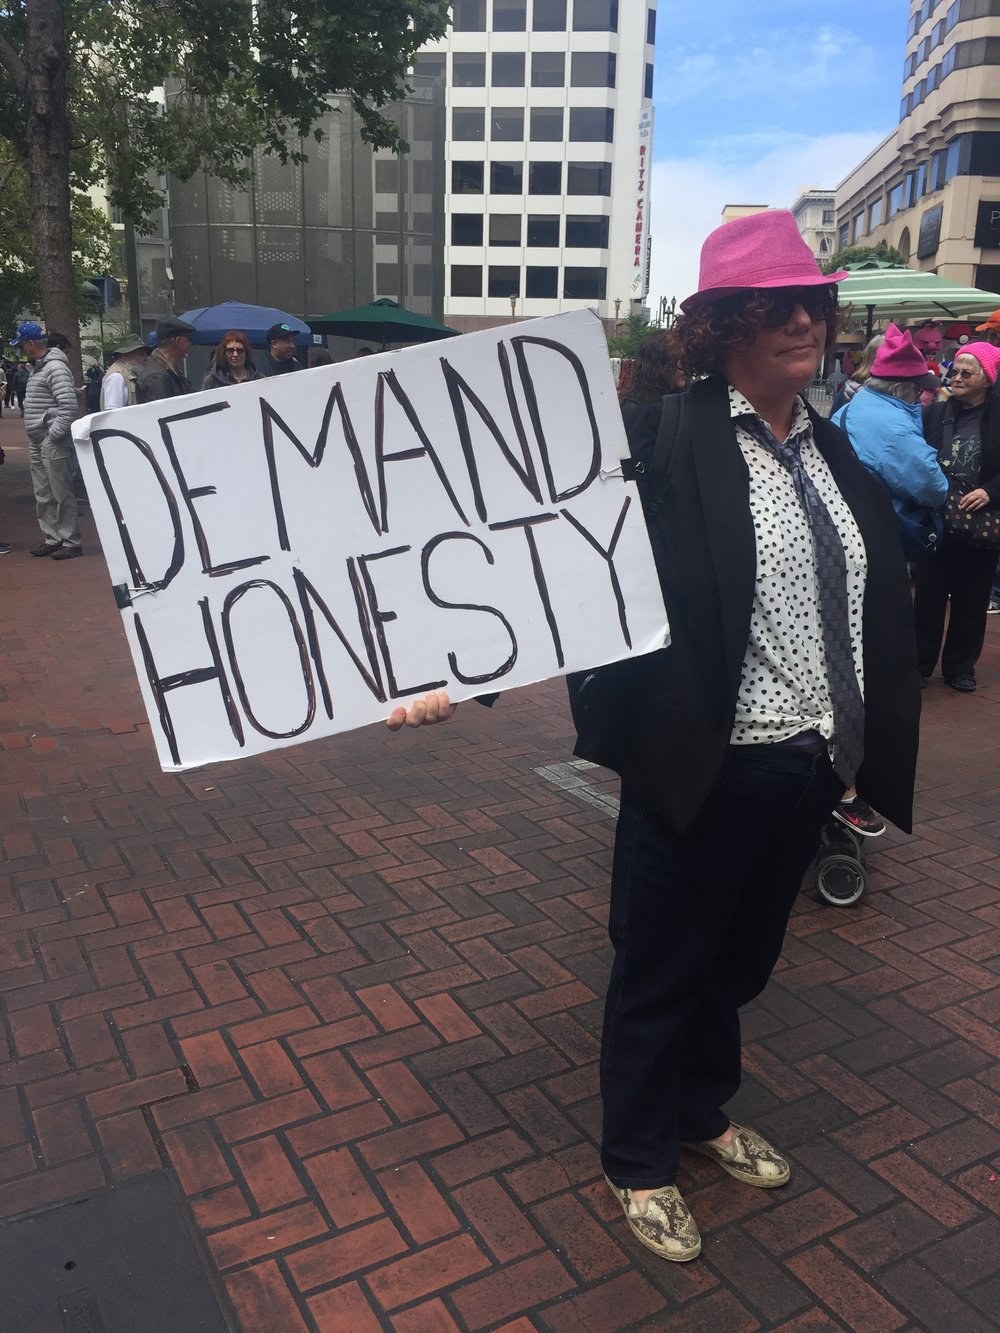 Gretchen Spieler, 53, protestor at San Francisco's March for Truth on June 3, 2017. Photo: Mary Finn